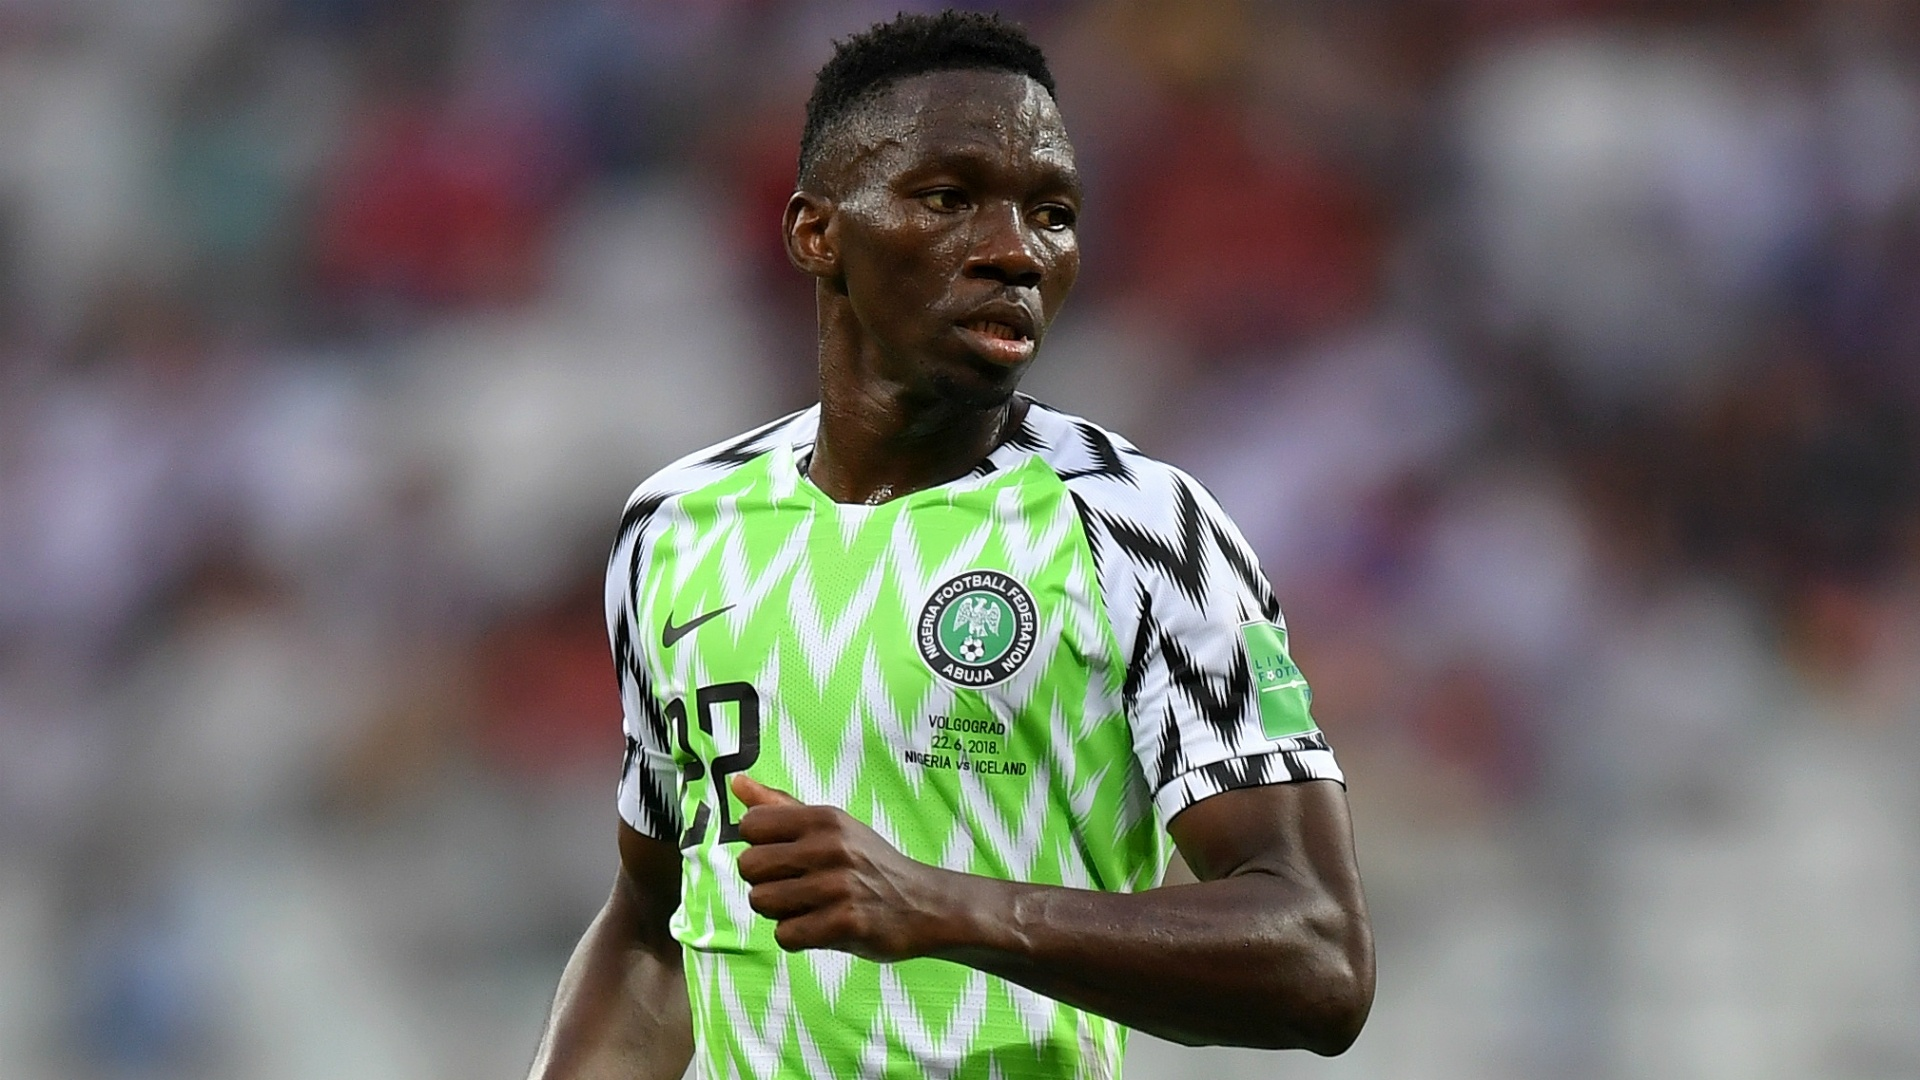 Omeruo joins Spanish side Leganes in permanent deal from Chelsea